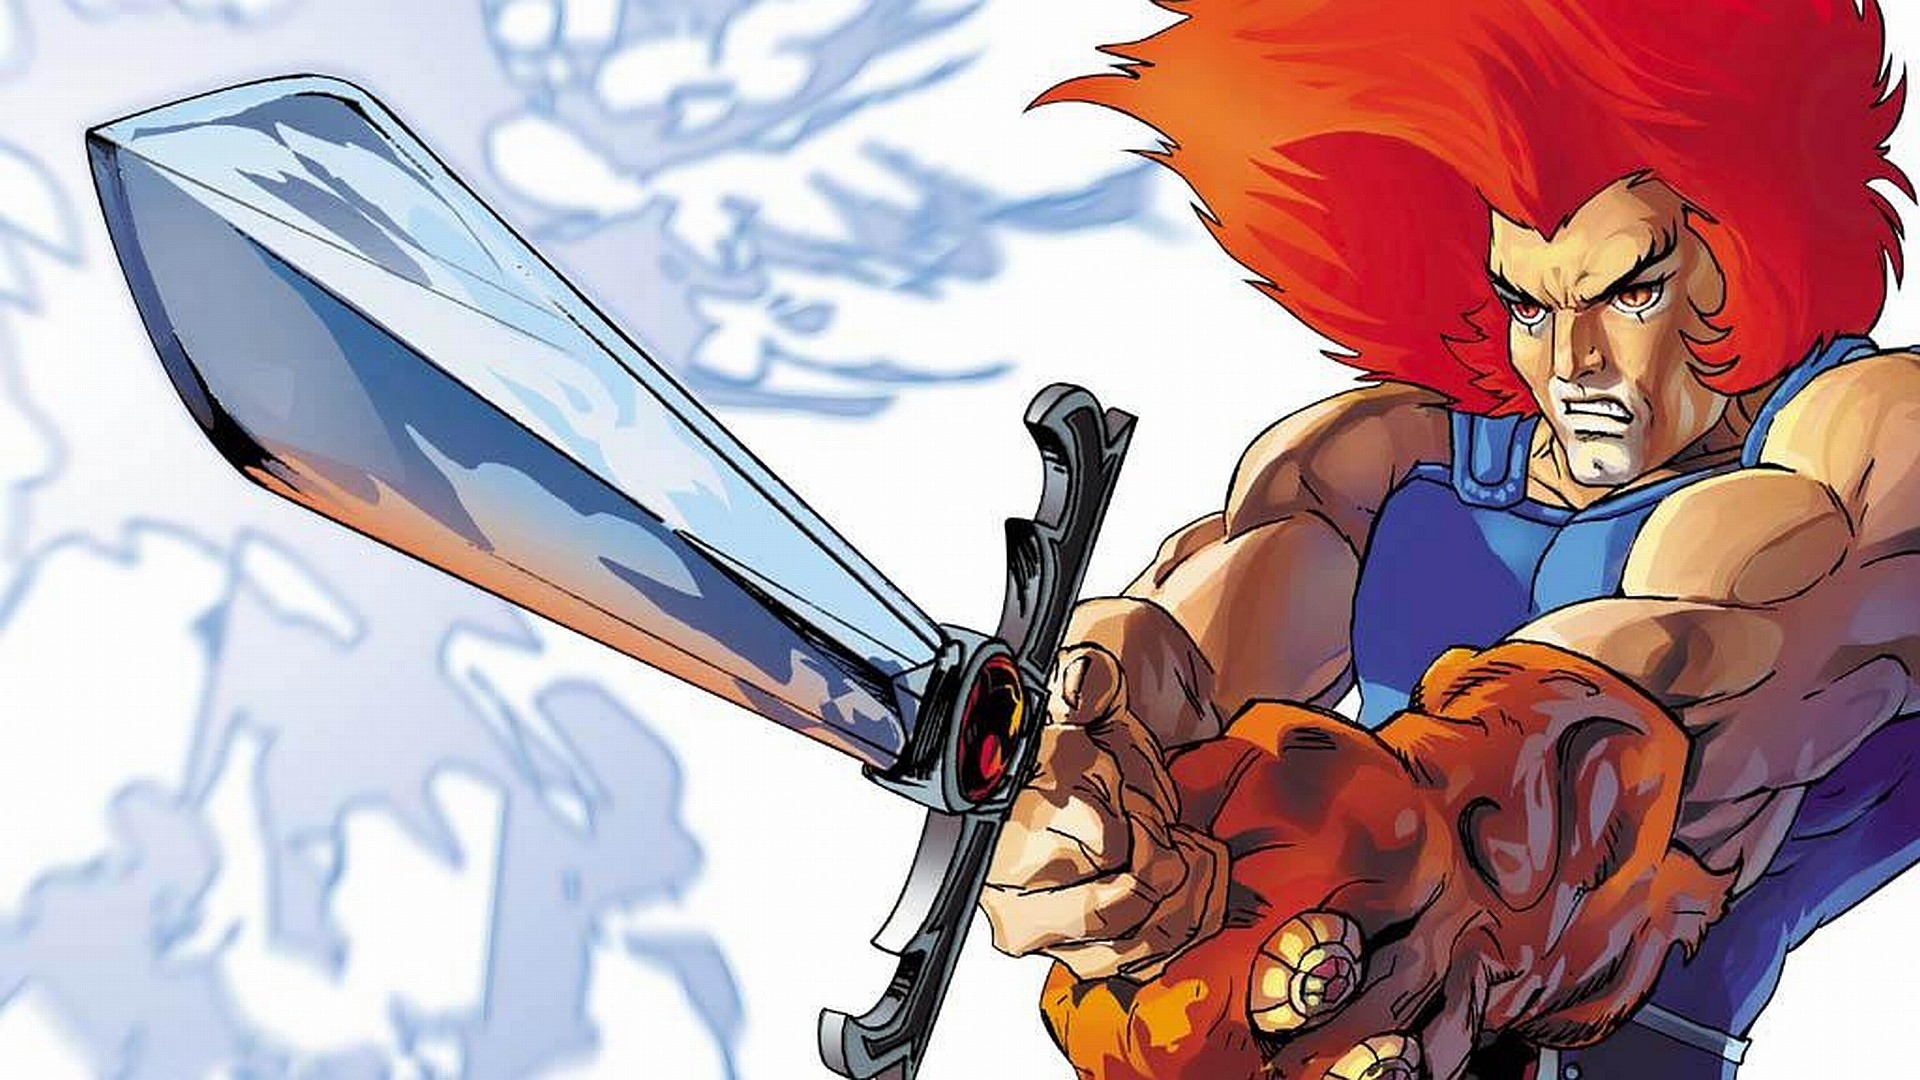 Res: 1920x1080, ThunderCats Wallpaper HD.